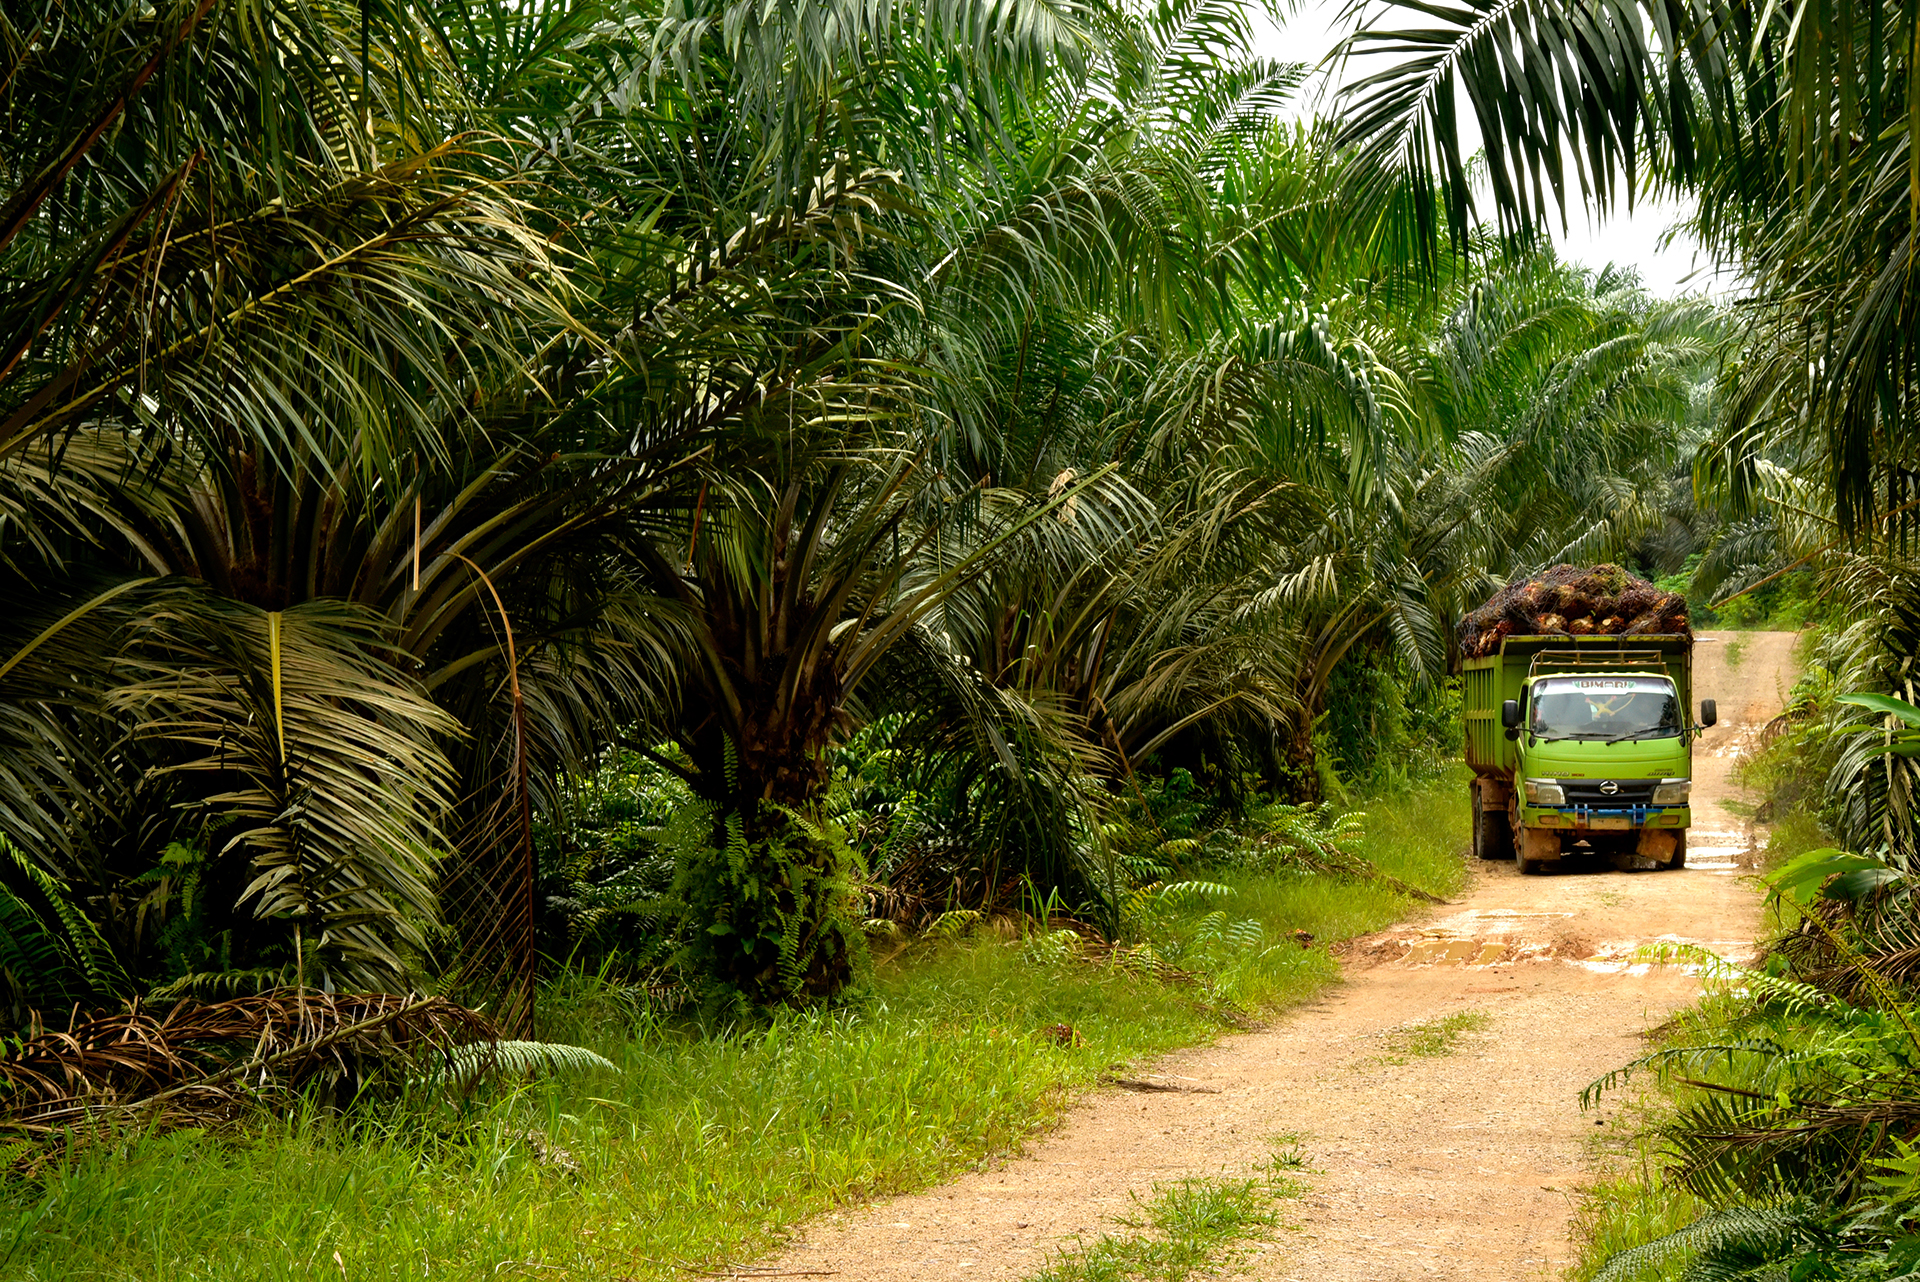 Oil Palm work